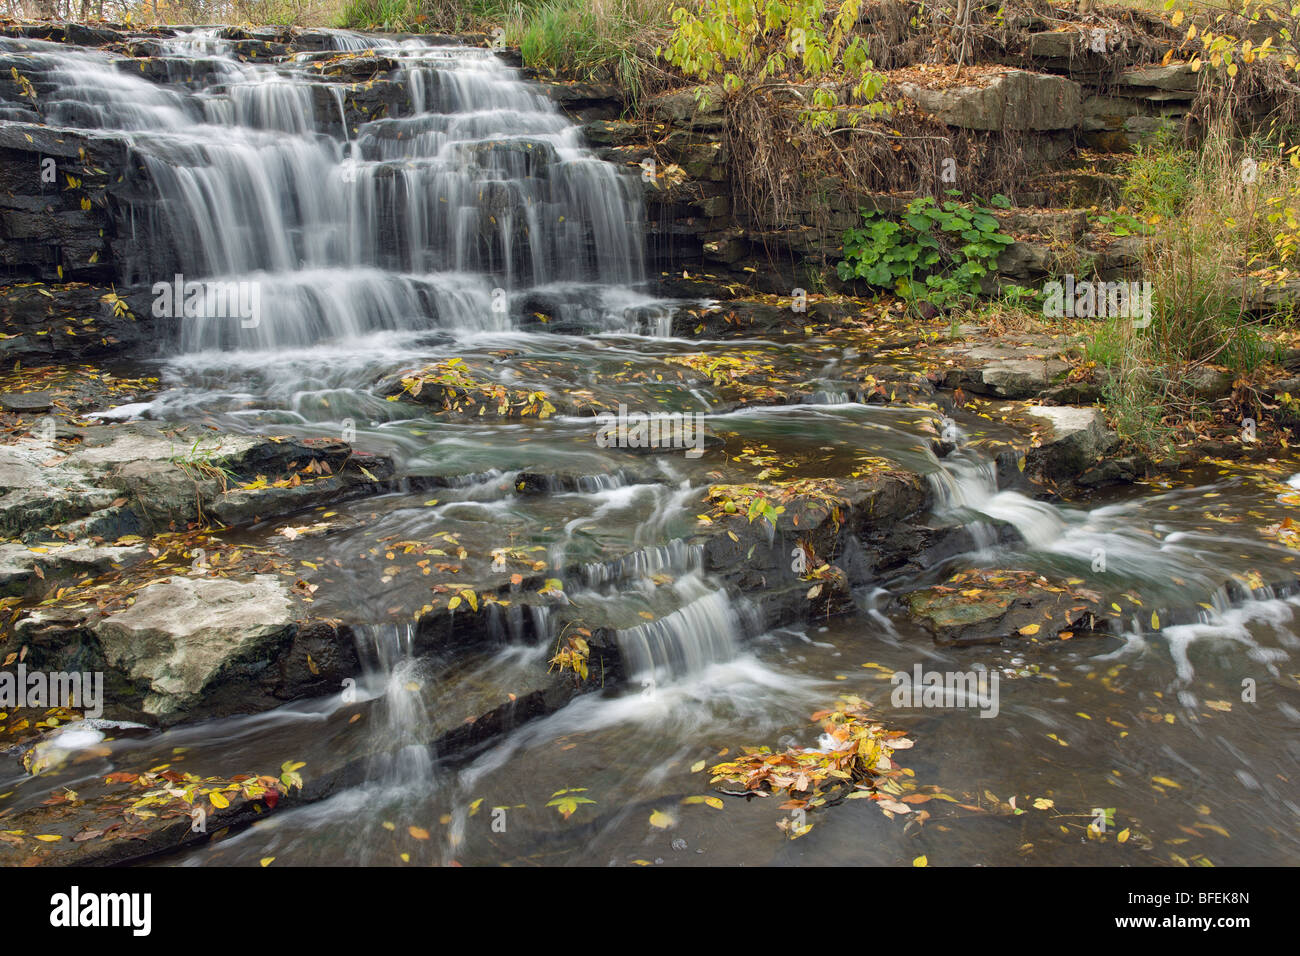 15 Mile Creek et Martins Falls, Rockway, Ontario, Canada Photo Stock